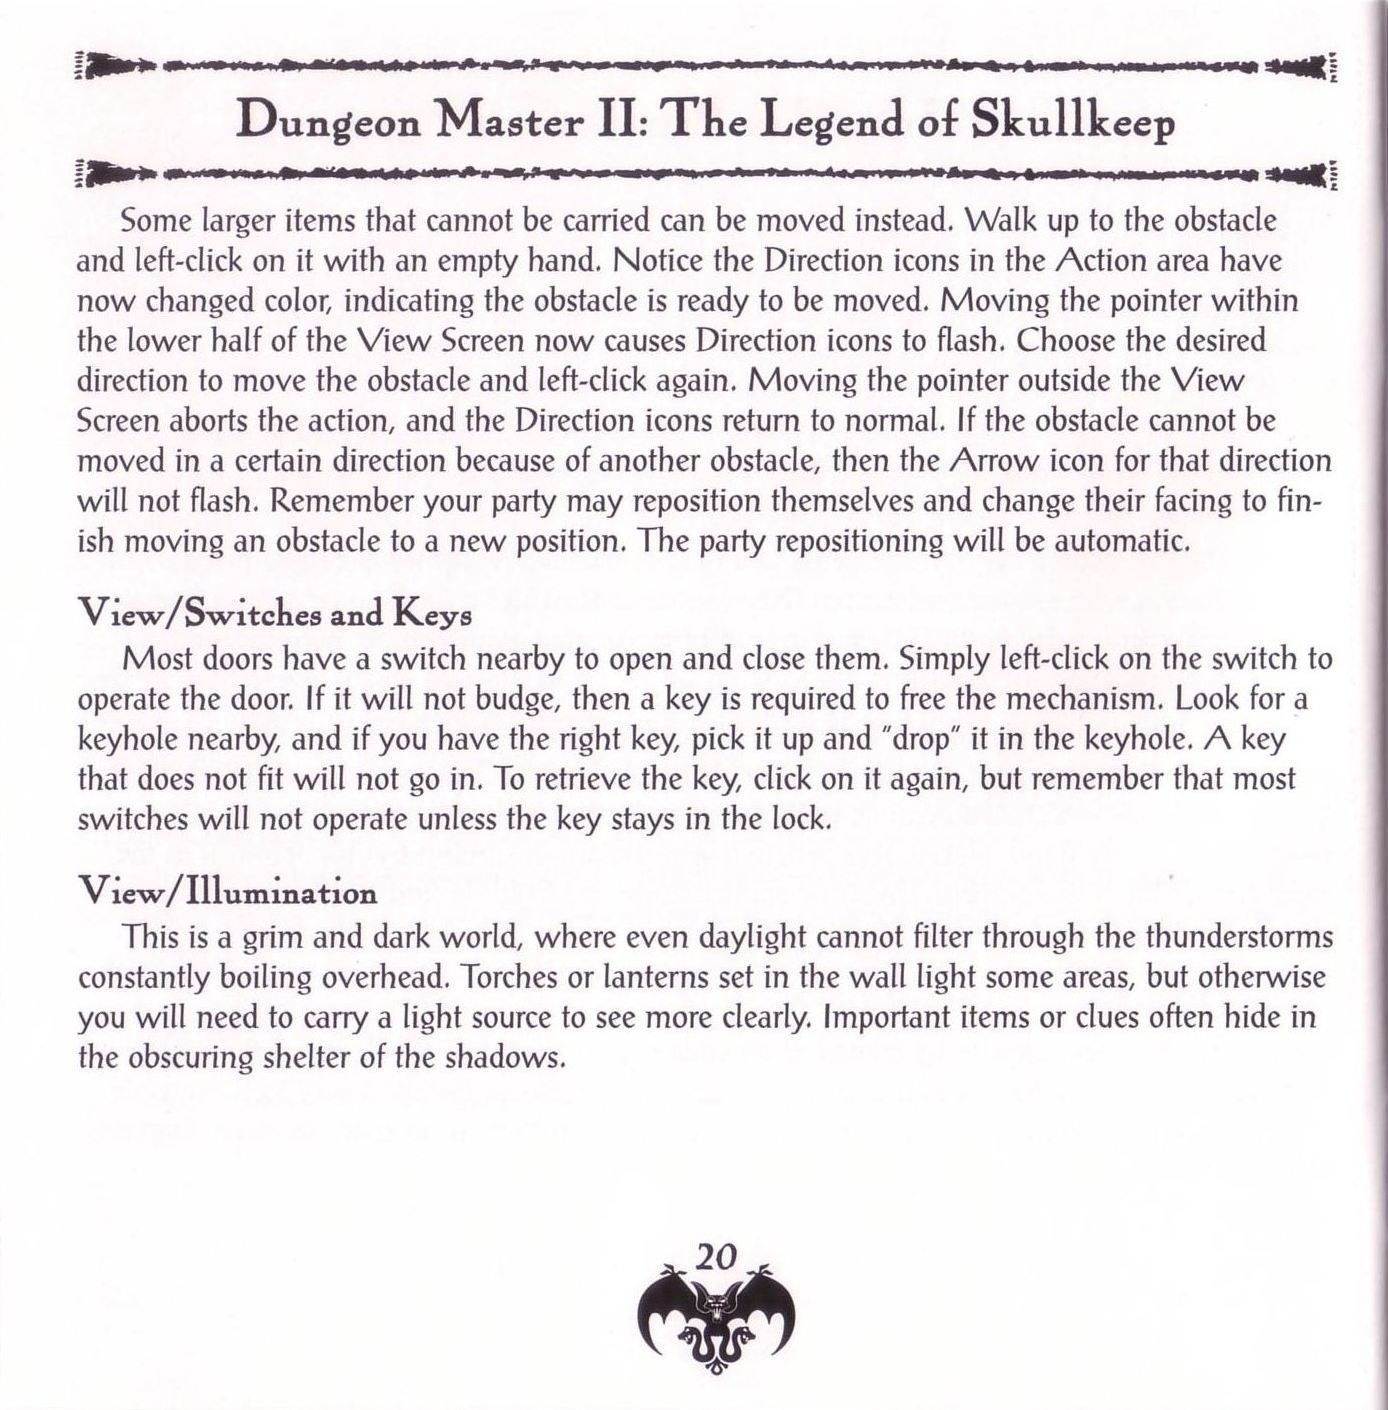 Game - Dungeon Master II - US - PC - Jewel Case - Booklet - Page 022 - Scan